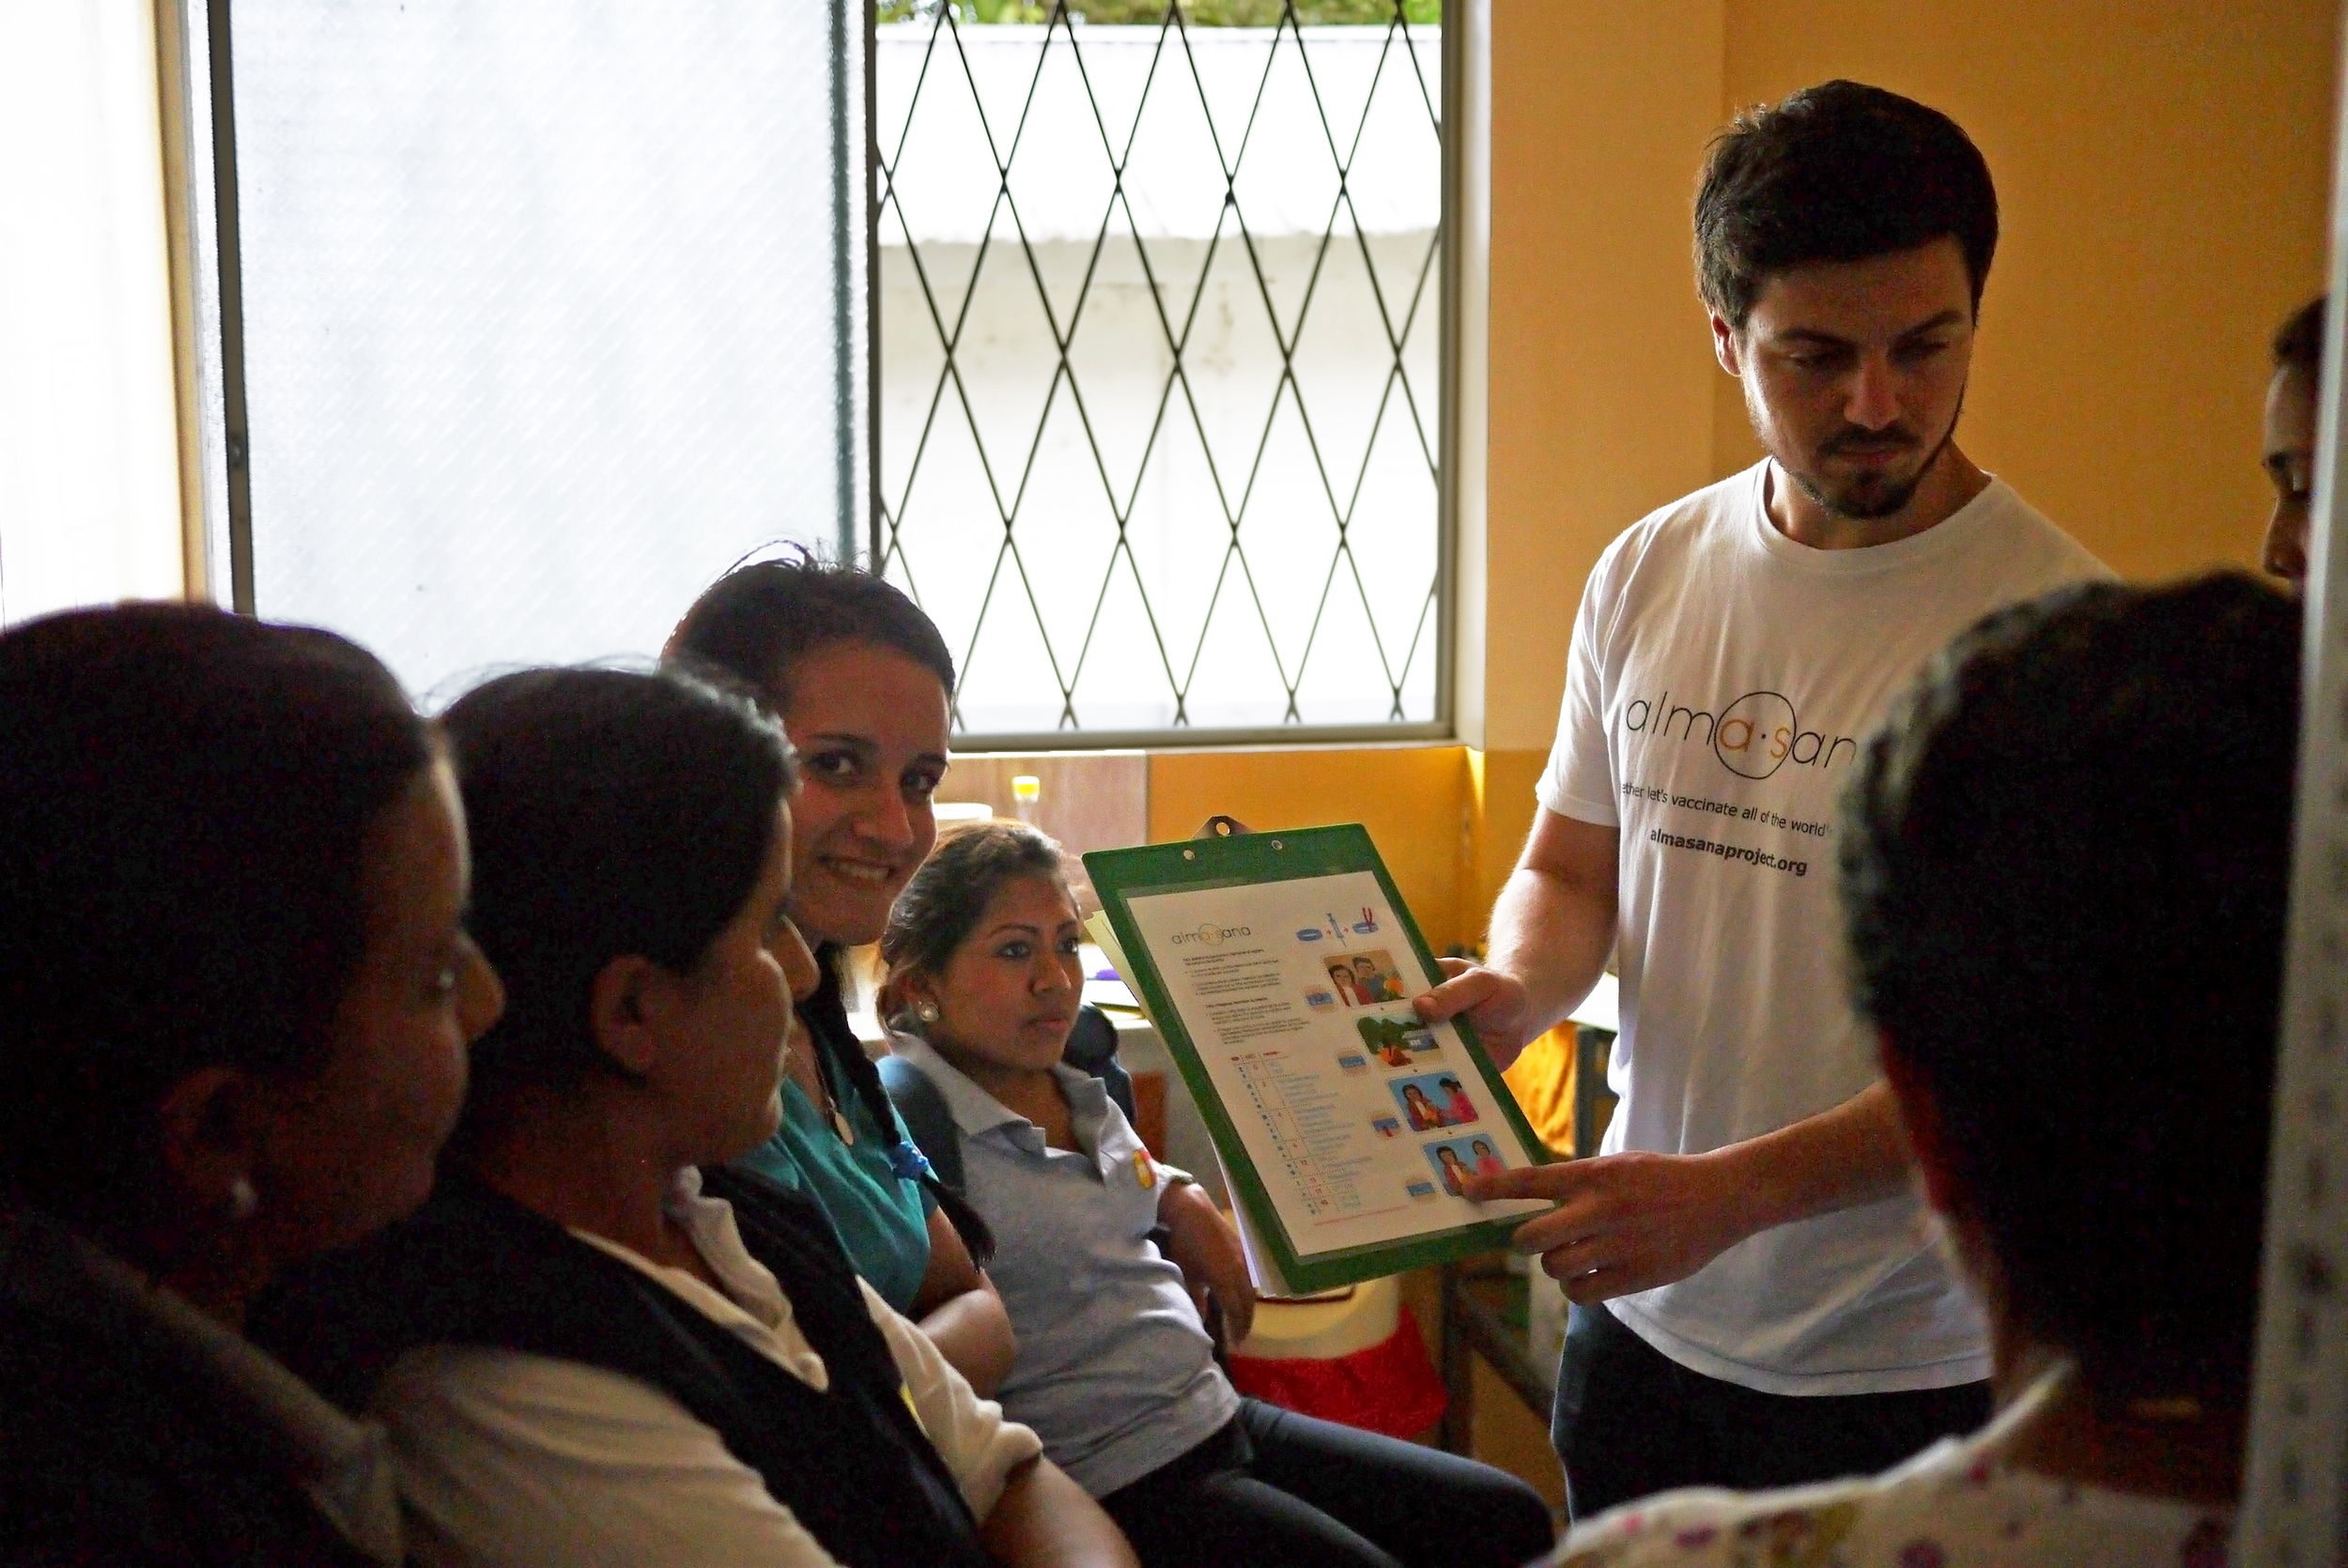 Alex Bozzette, our Ecuador Project Coordinator, trains the Ministry of Public Health nurses on how the bracelets work and how to explain them to moms using a bracelet vaccination guide (shown). Photo taken: June 25, 2013.